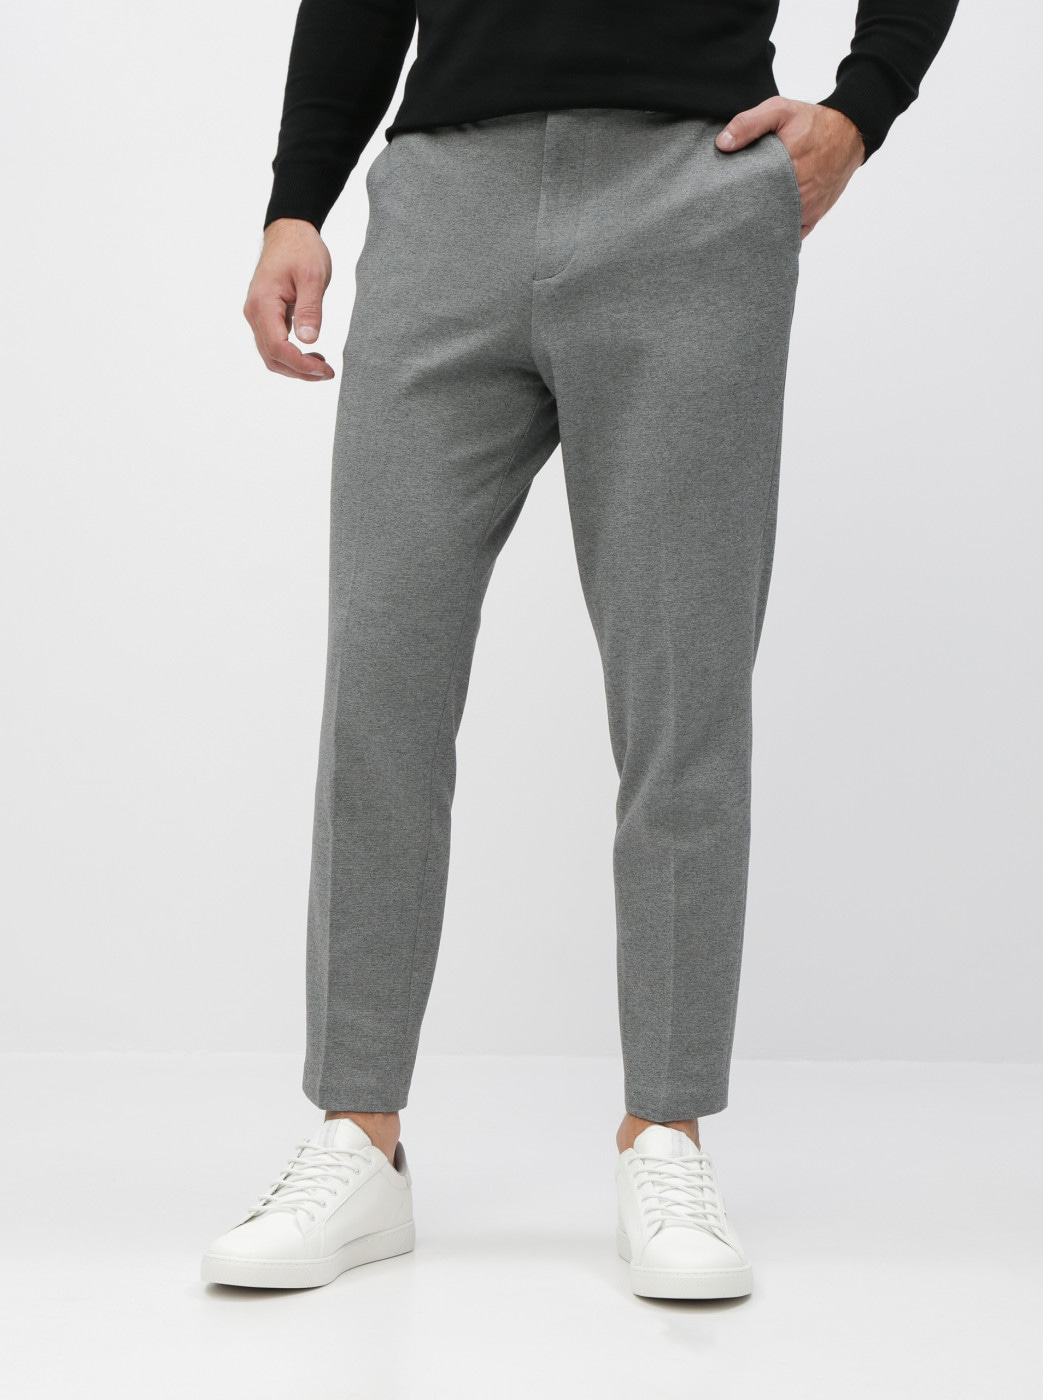 Grey Slim Fit Pants Selected Homme New Jersey